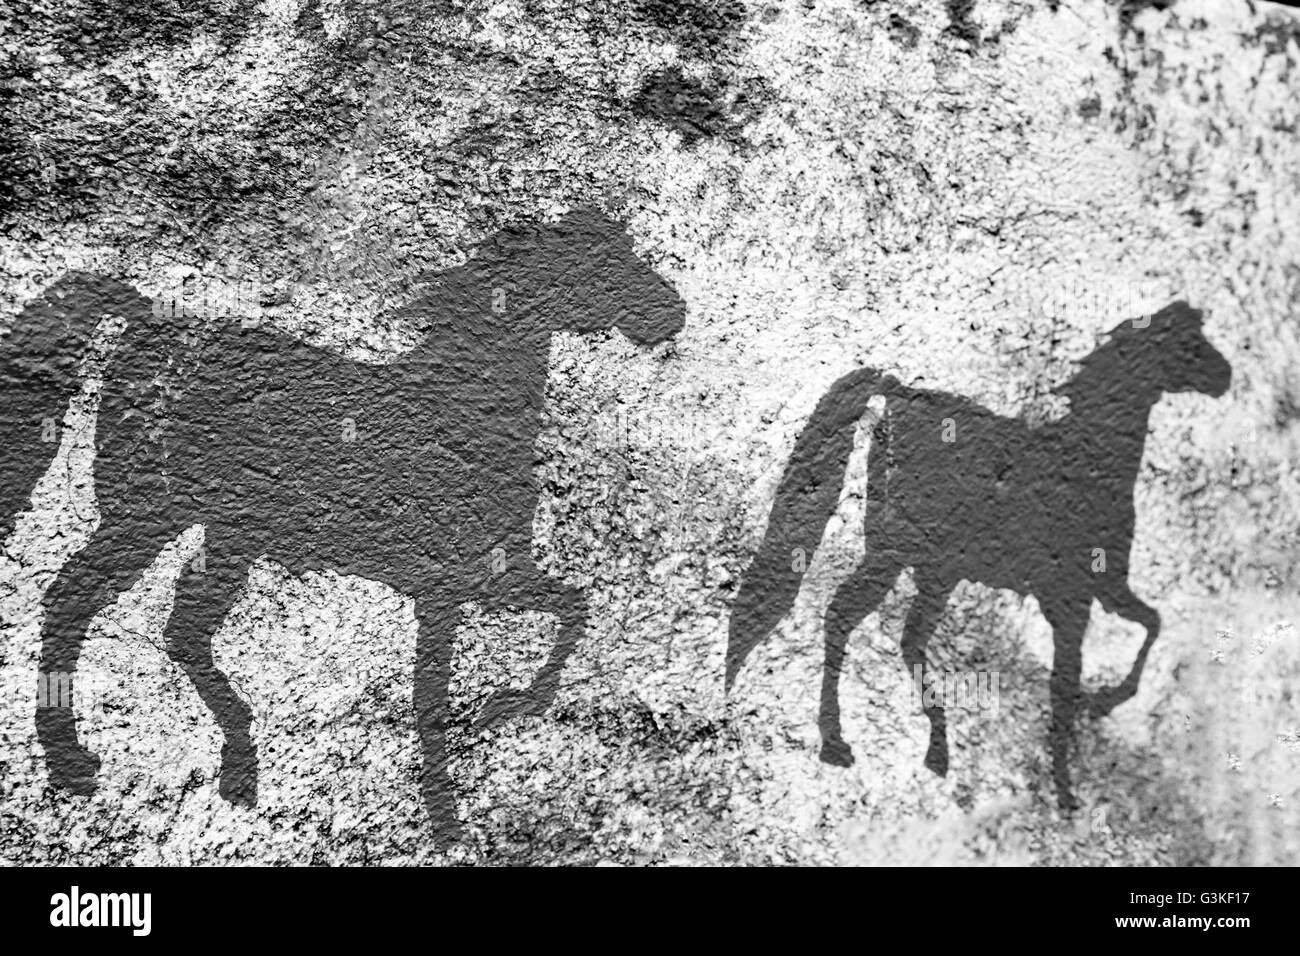 Texture or backgrounds of painted Horse on the cemented wall. - Stock Image